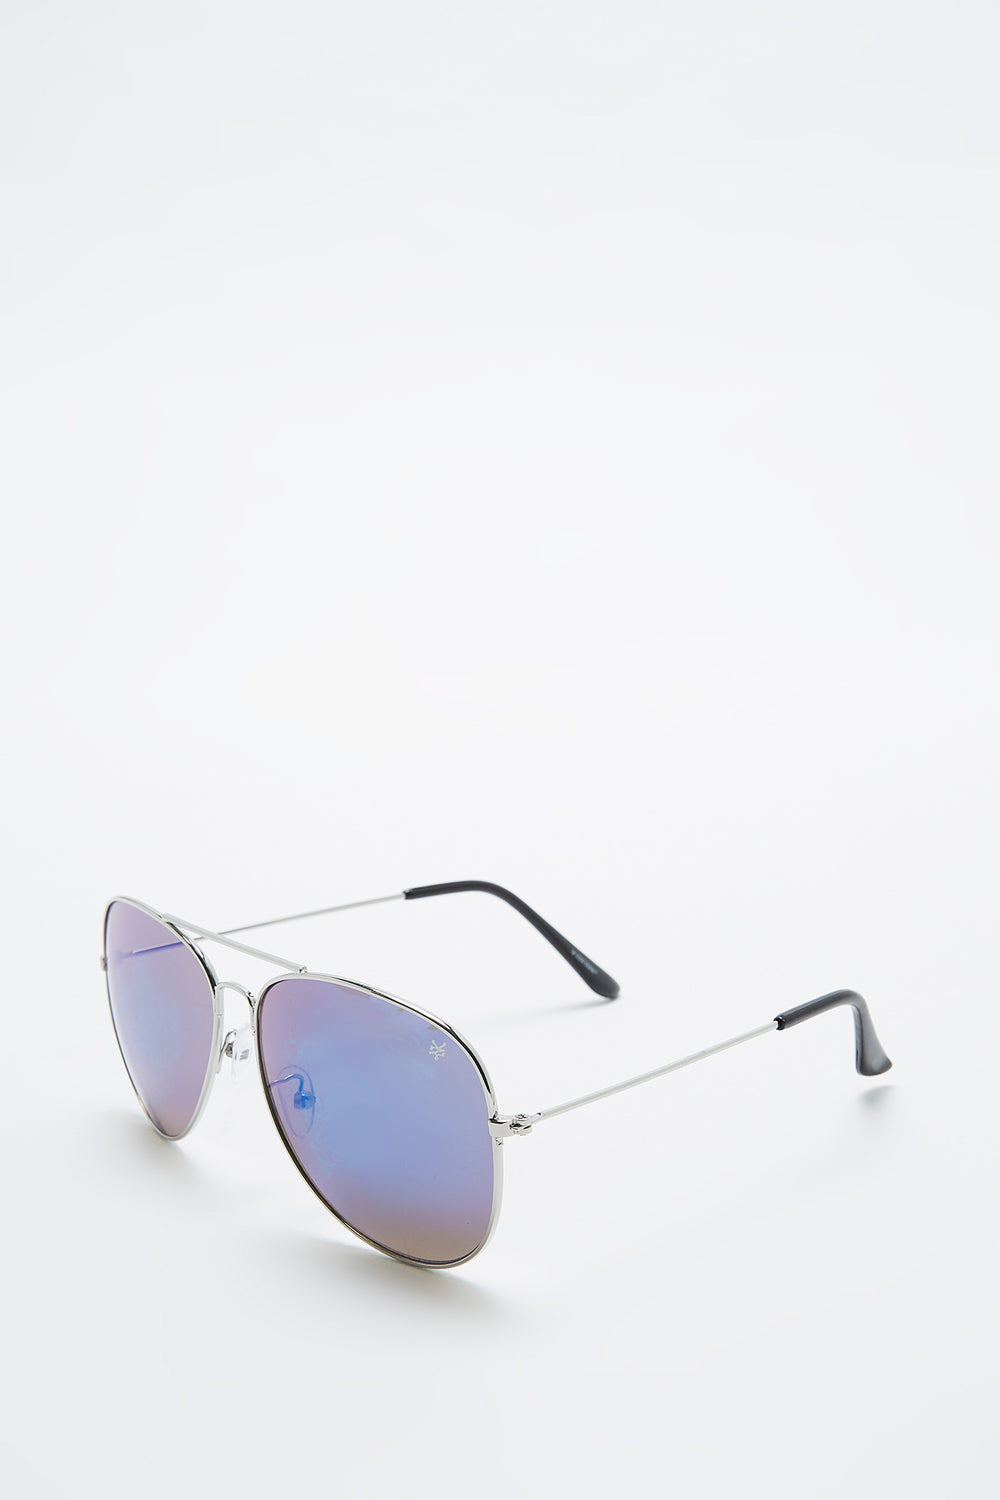 Lunettes Style Aviator Zoo York Homme Argent